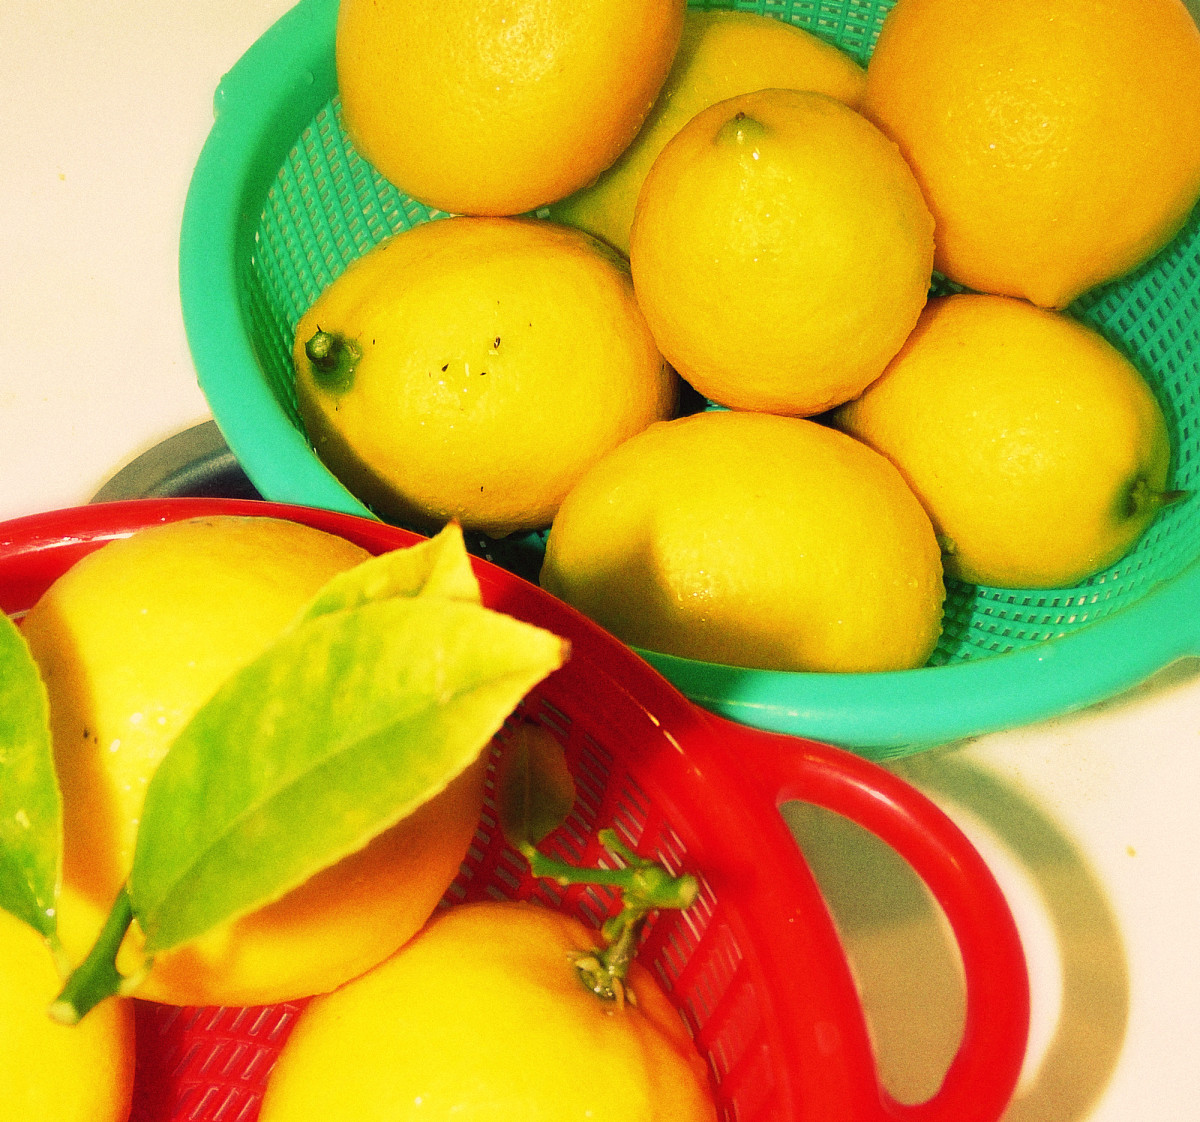 Healthy, freshly picked lemons